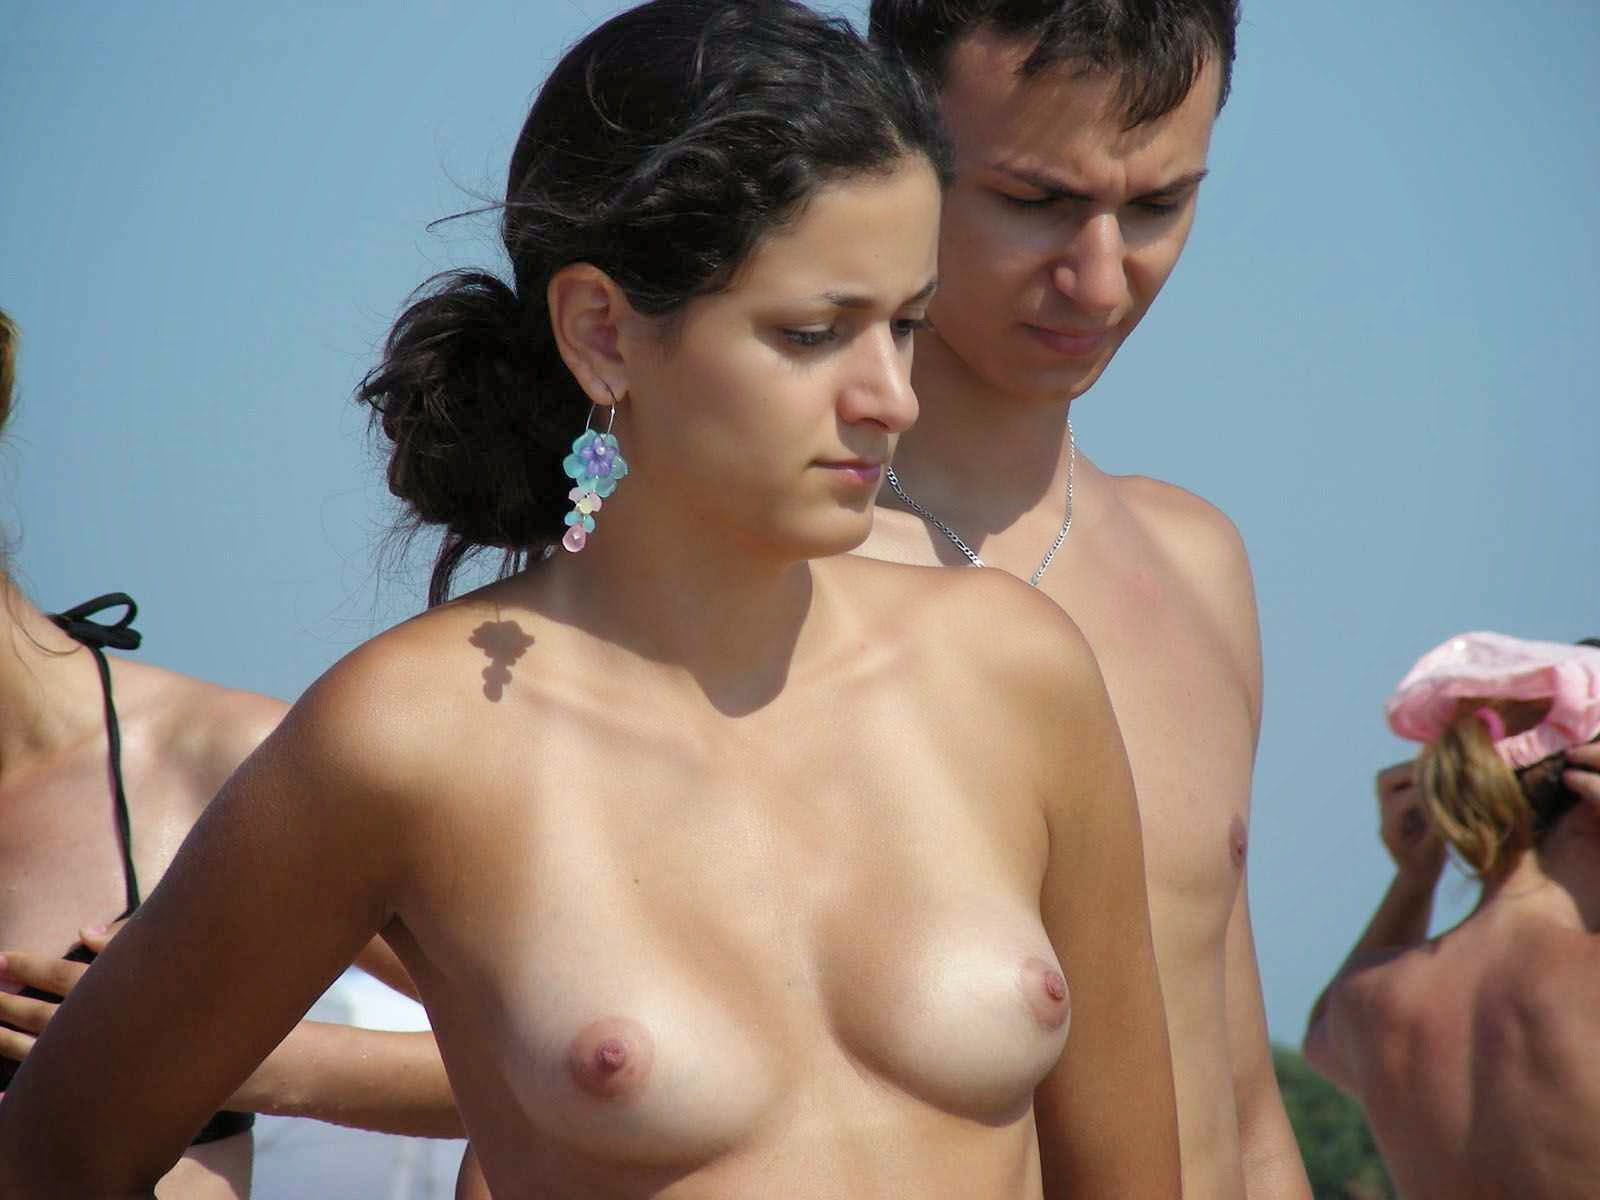 Scale Nudist girls hot beach sex